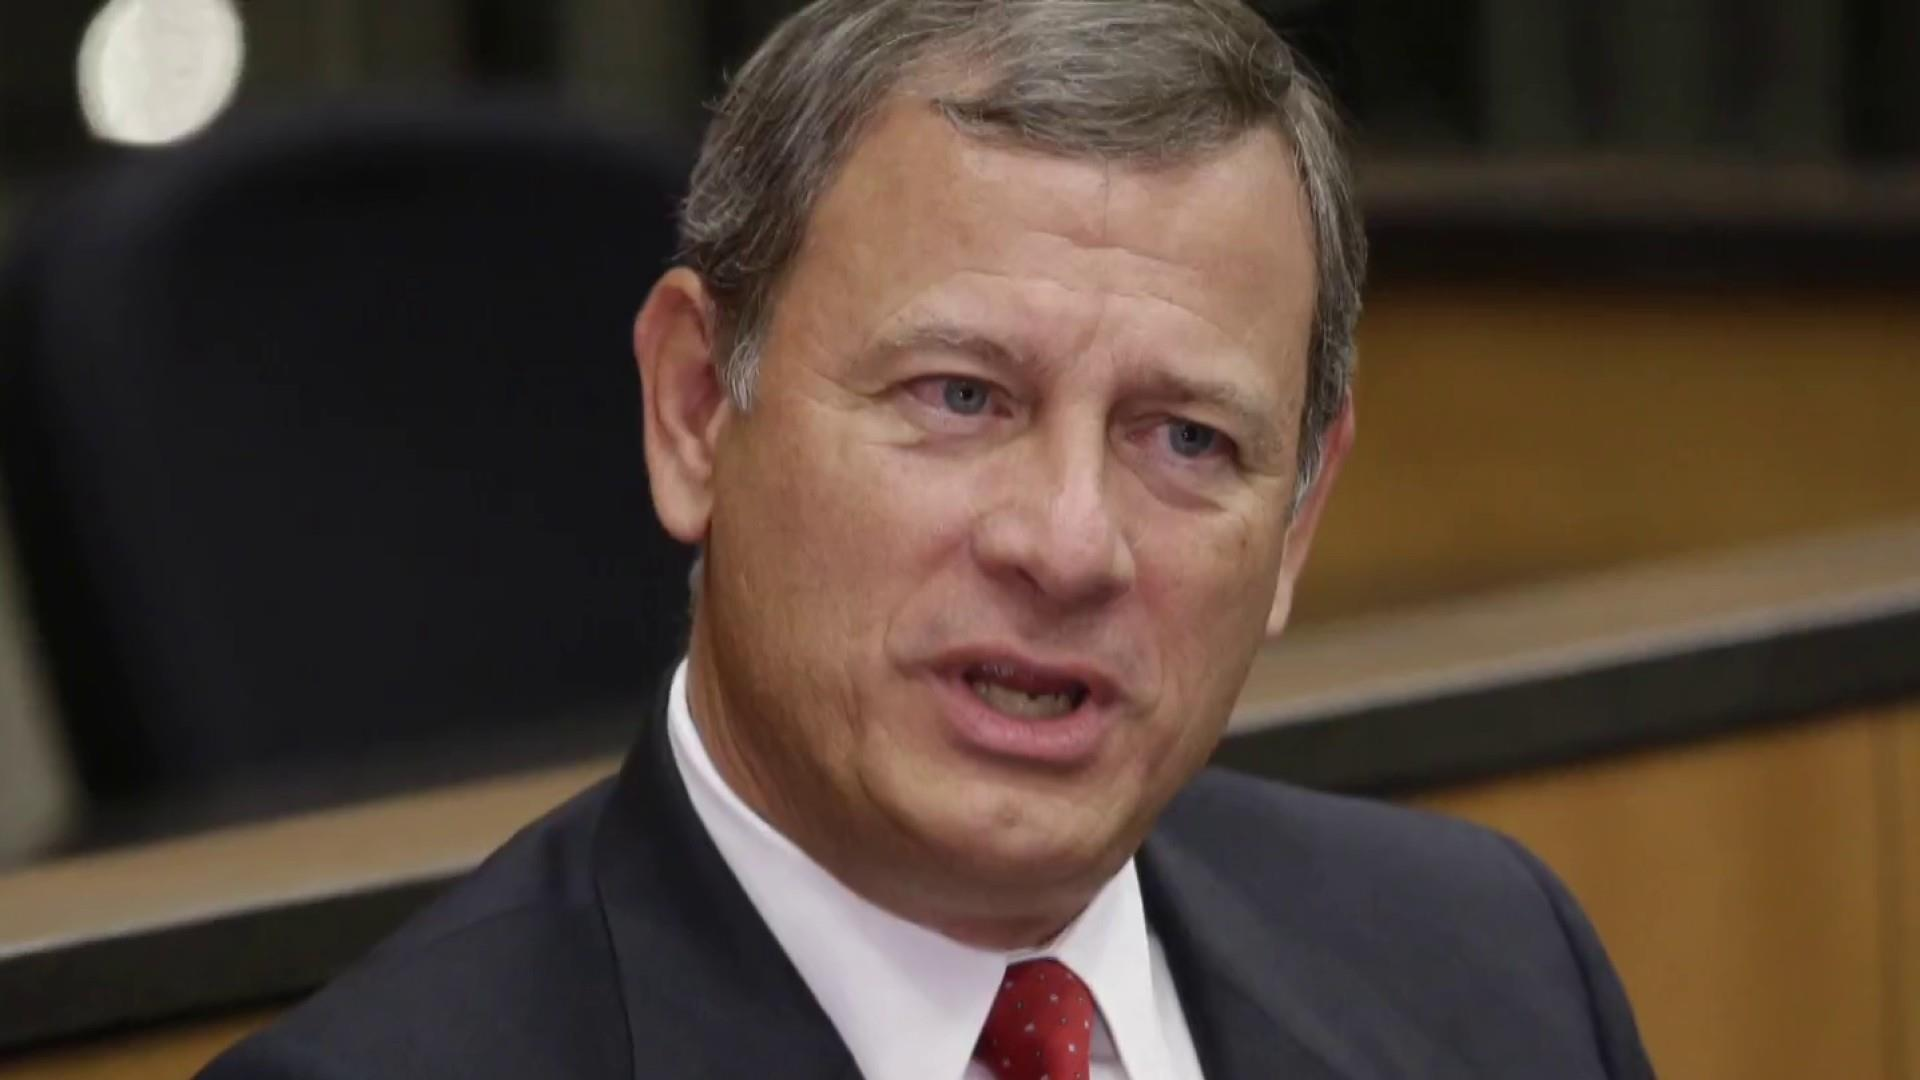 In rare rebuke, Chief Justice Roberts slams Trump for comment about 'Obama judge'